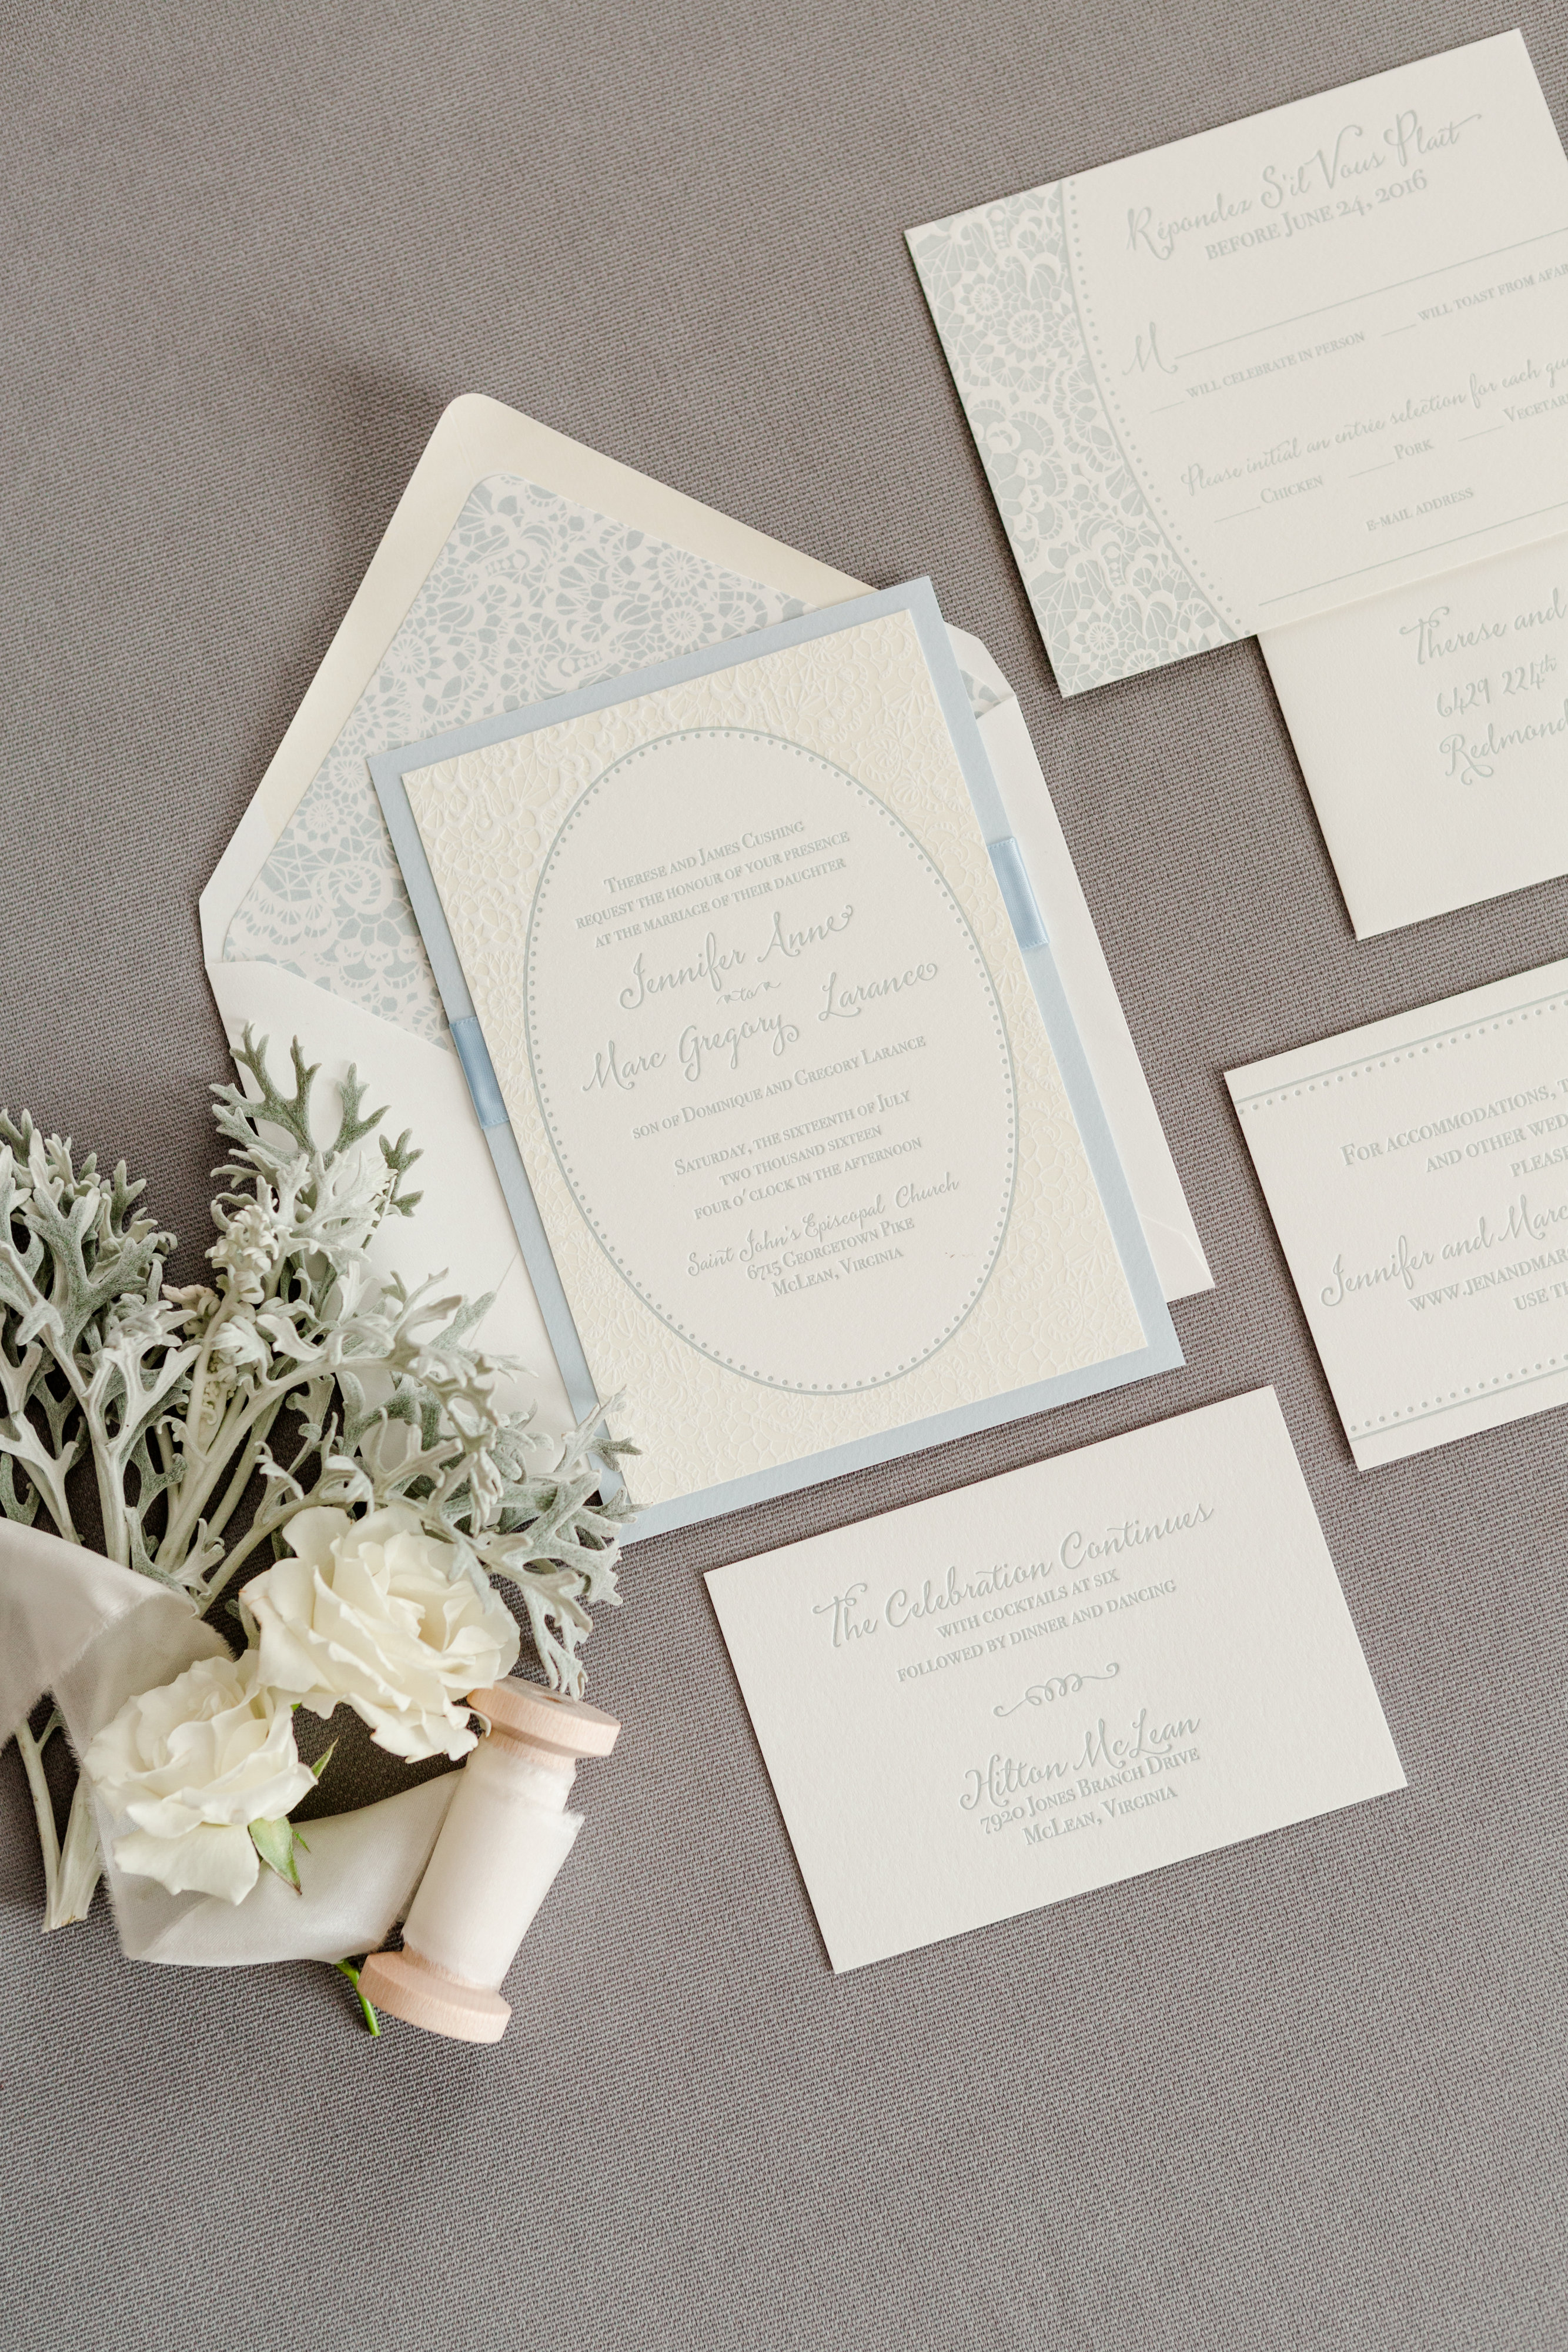 Layered & embellished 2-color letterpress wedding invitation features lace pattern and soft blue color.